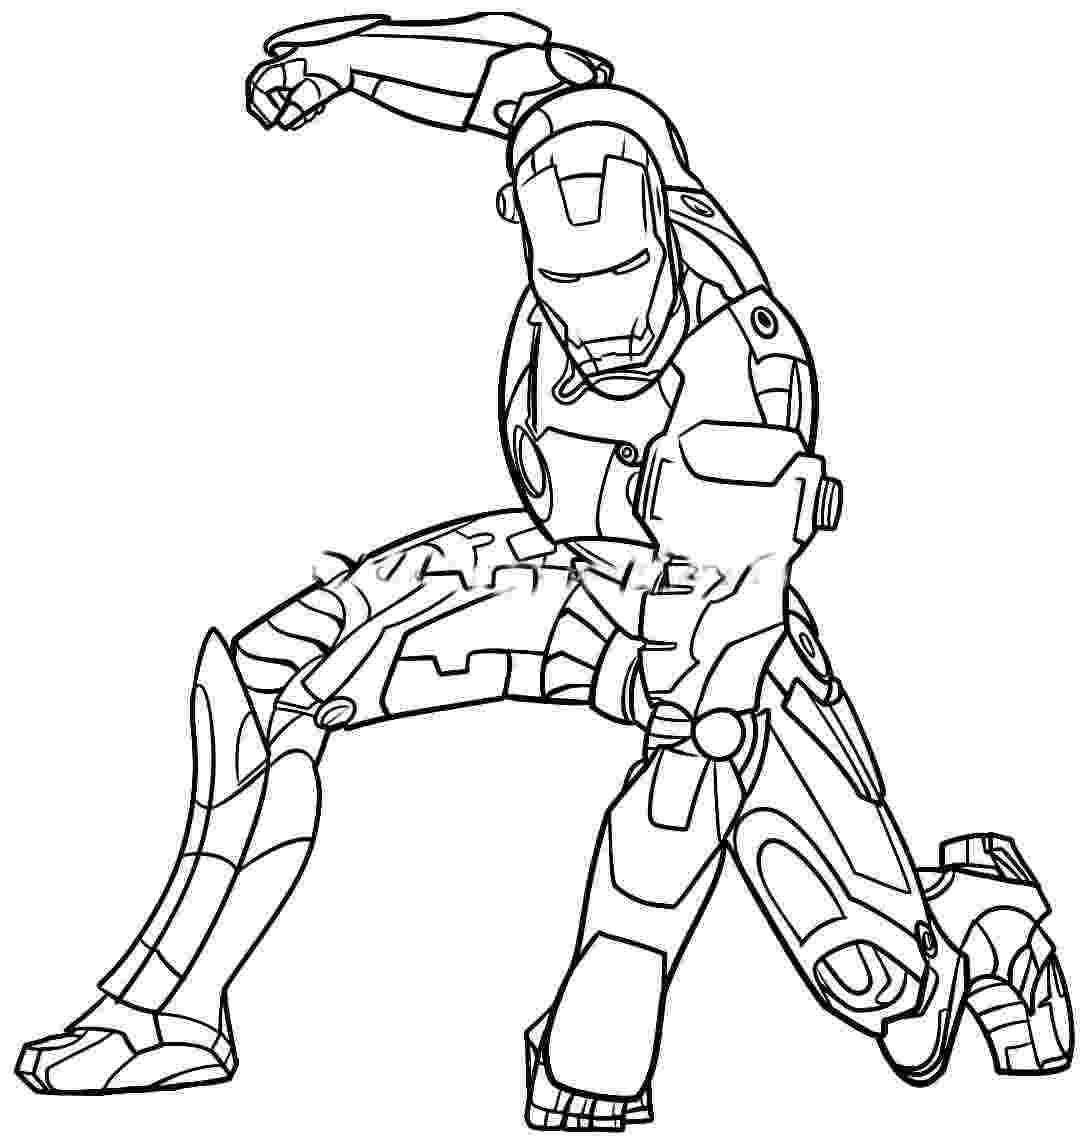 super heroes coloring pictures super heros coloring pages momjunction super pictures heroes coloring